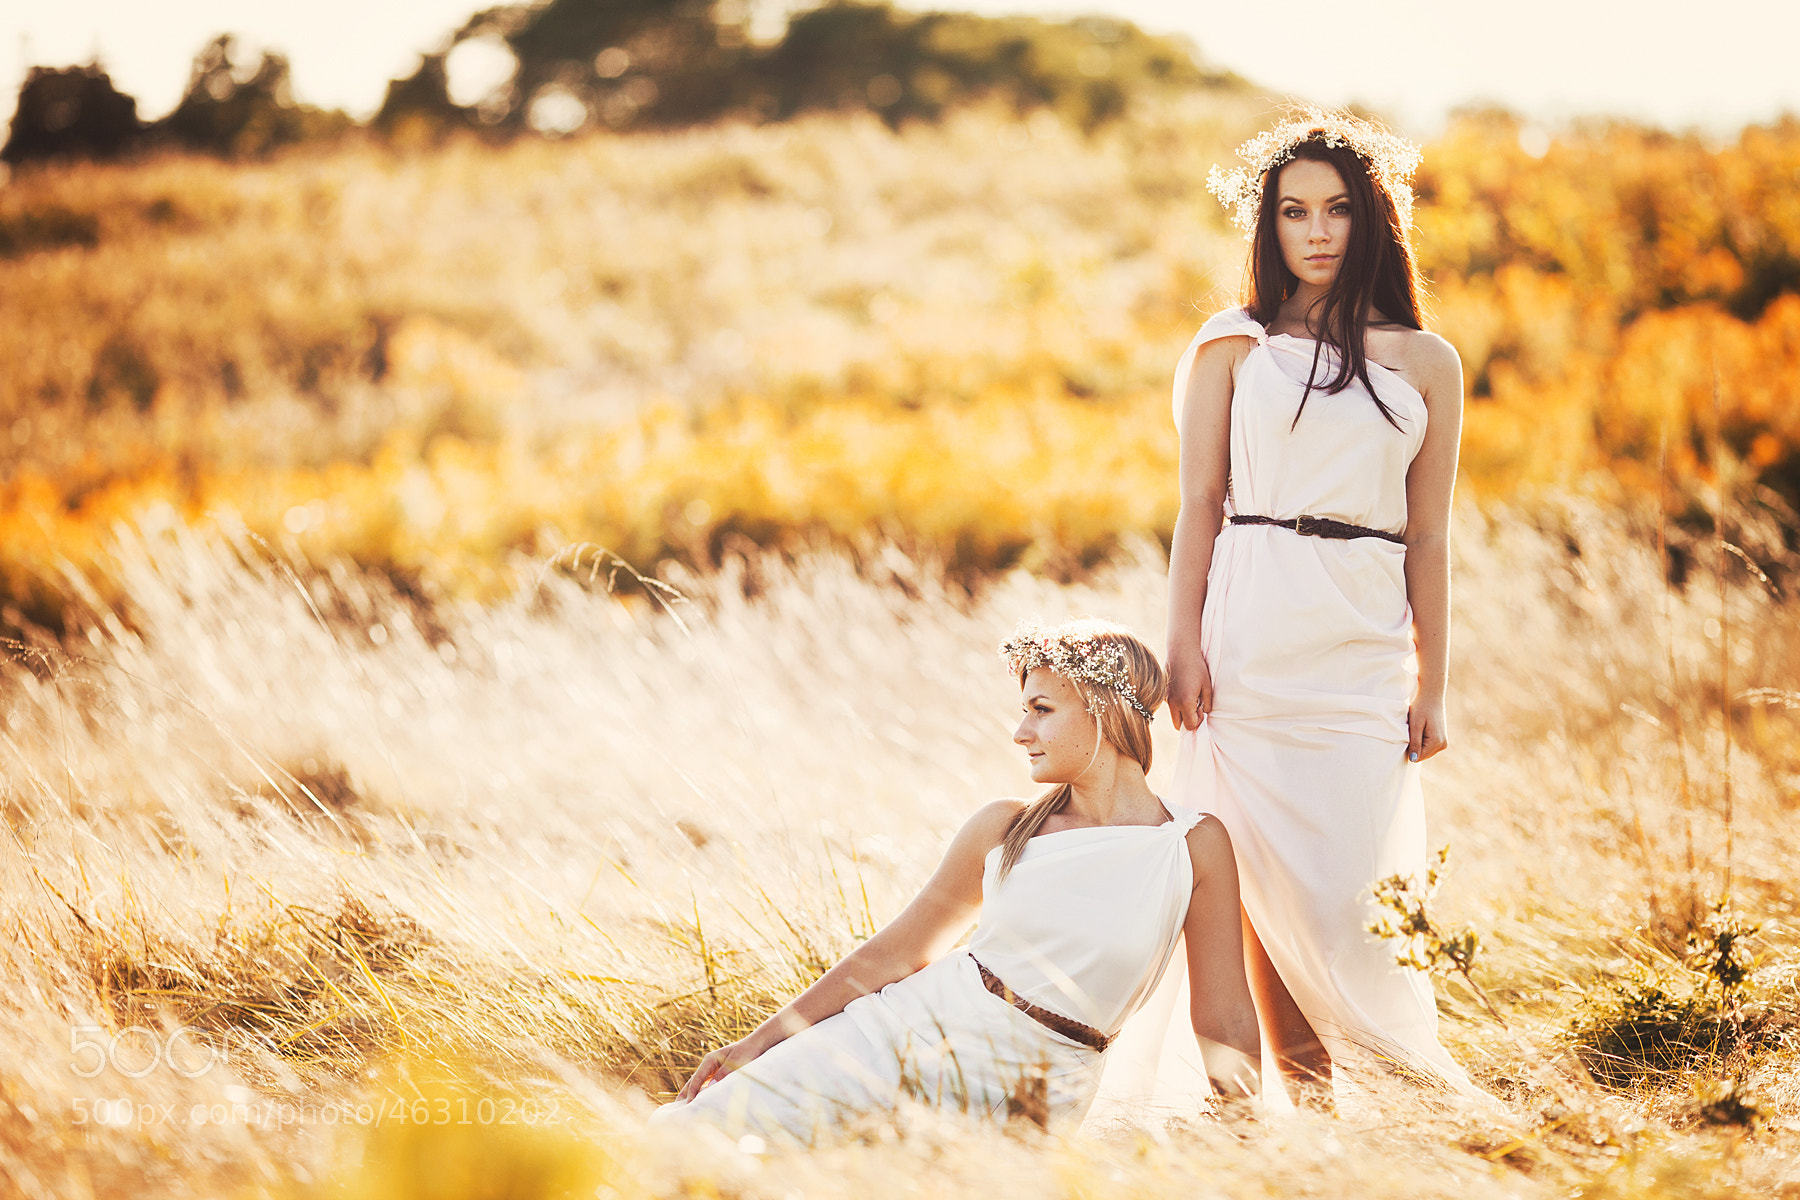 Photograph Jane & Polina II by Vanessa Paxton on 500px